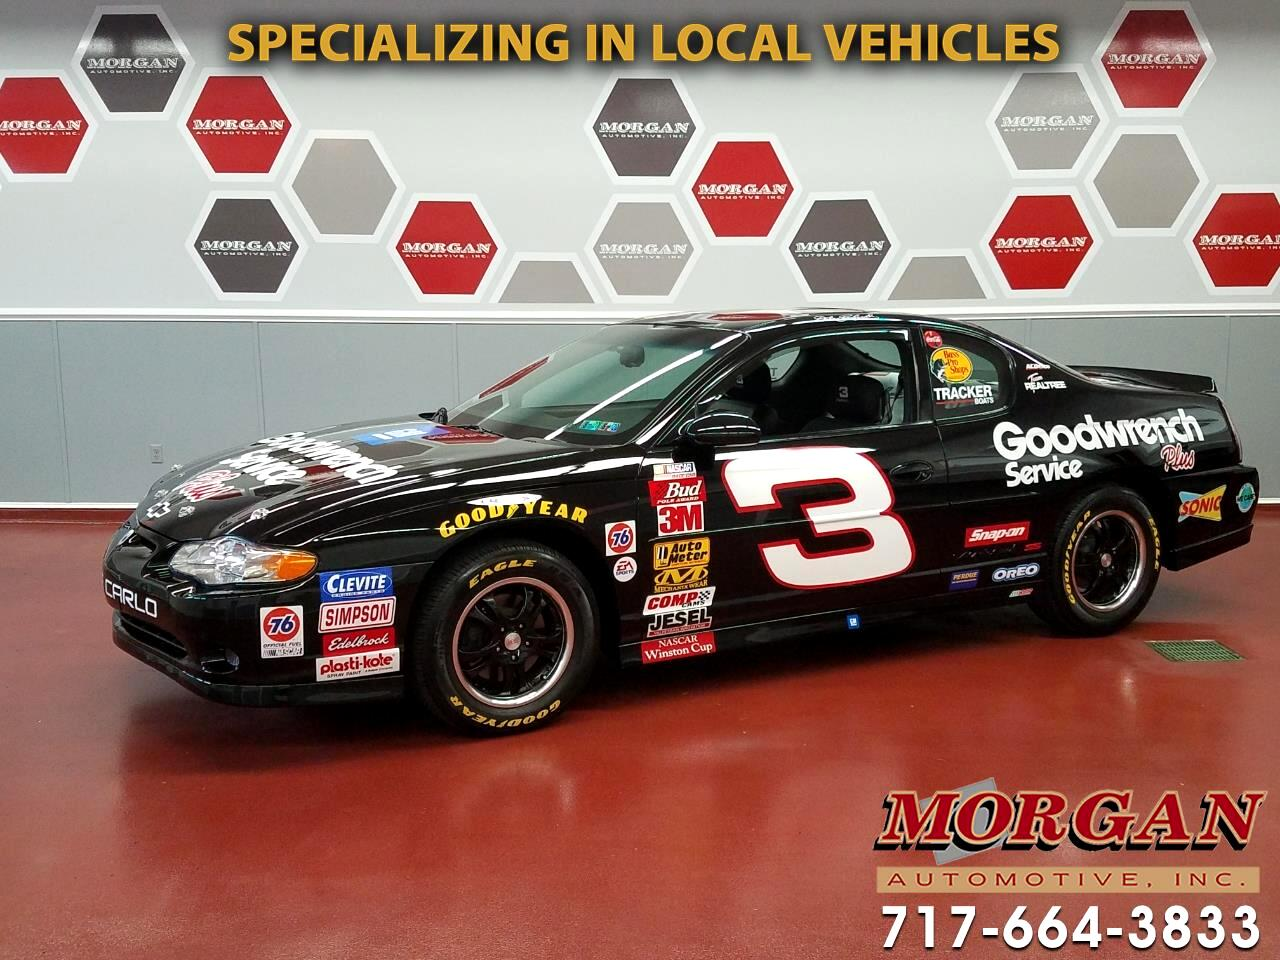 2001 Chevrolet Monte Carlo SS Earnhardt Edition